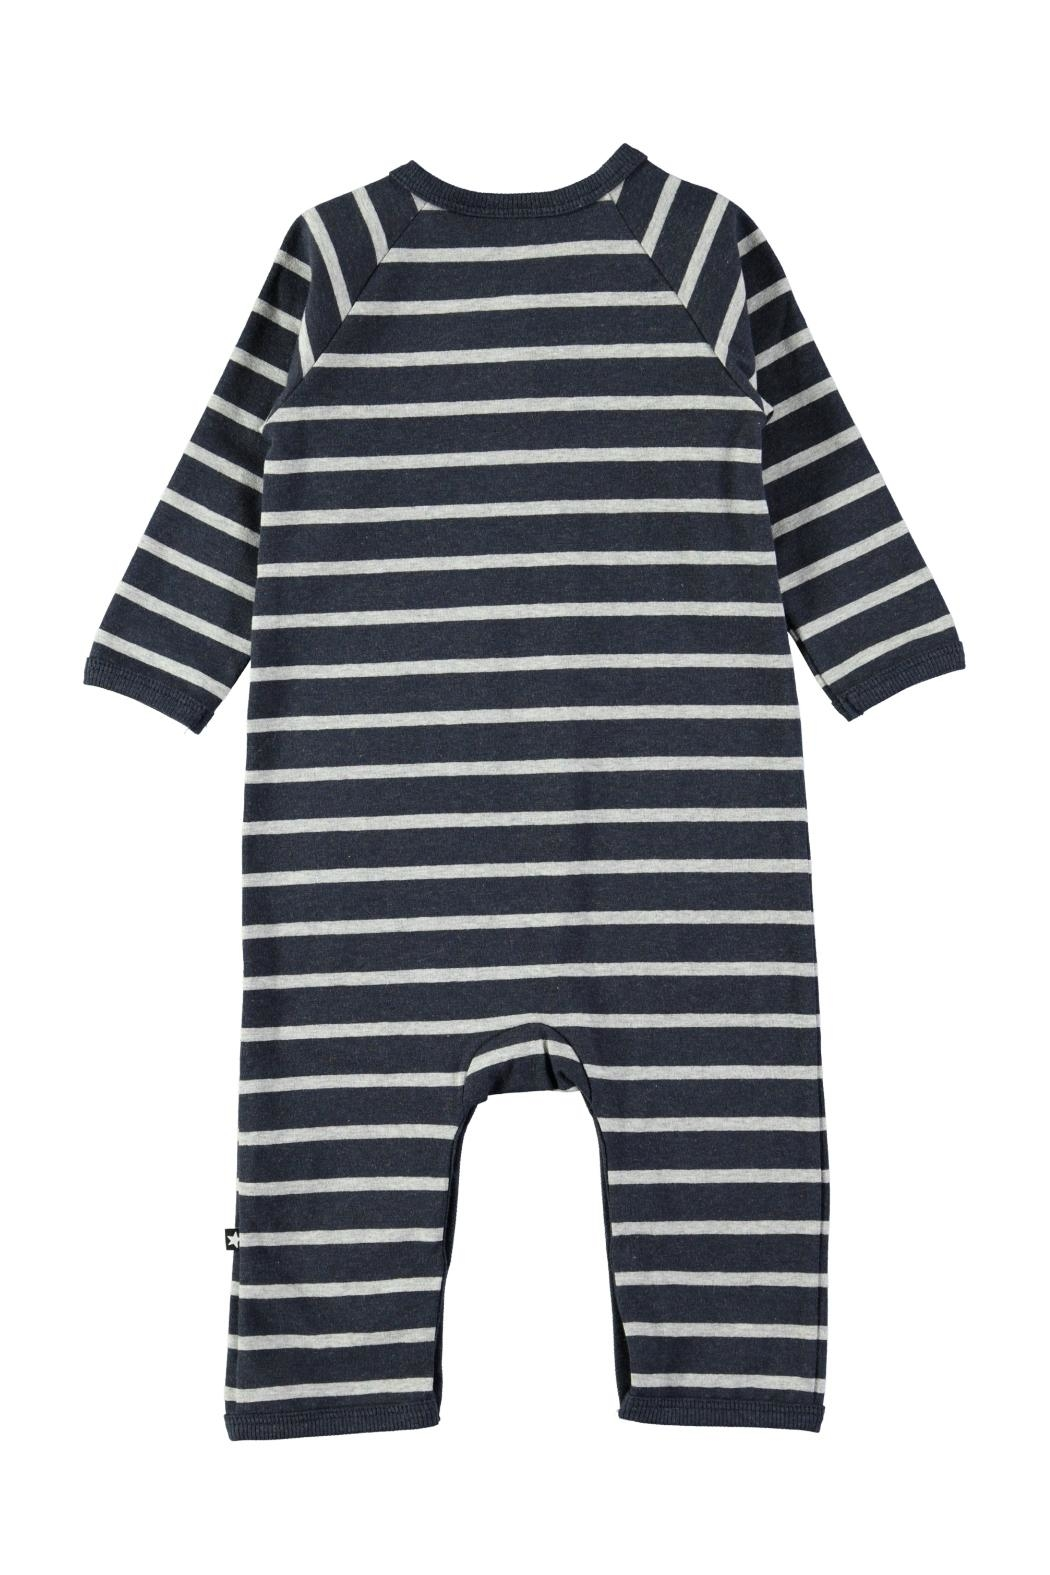 Molo Melange Stripe Playsuit - Front Full Image